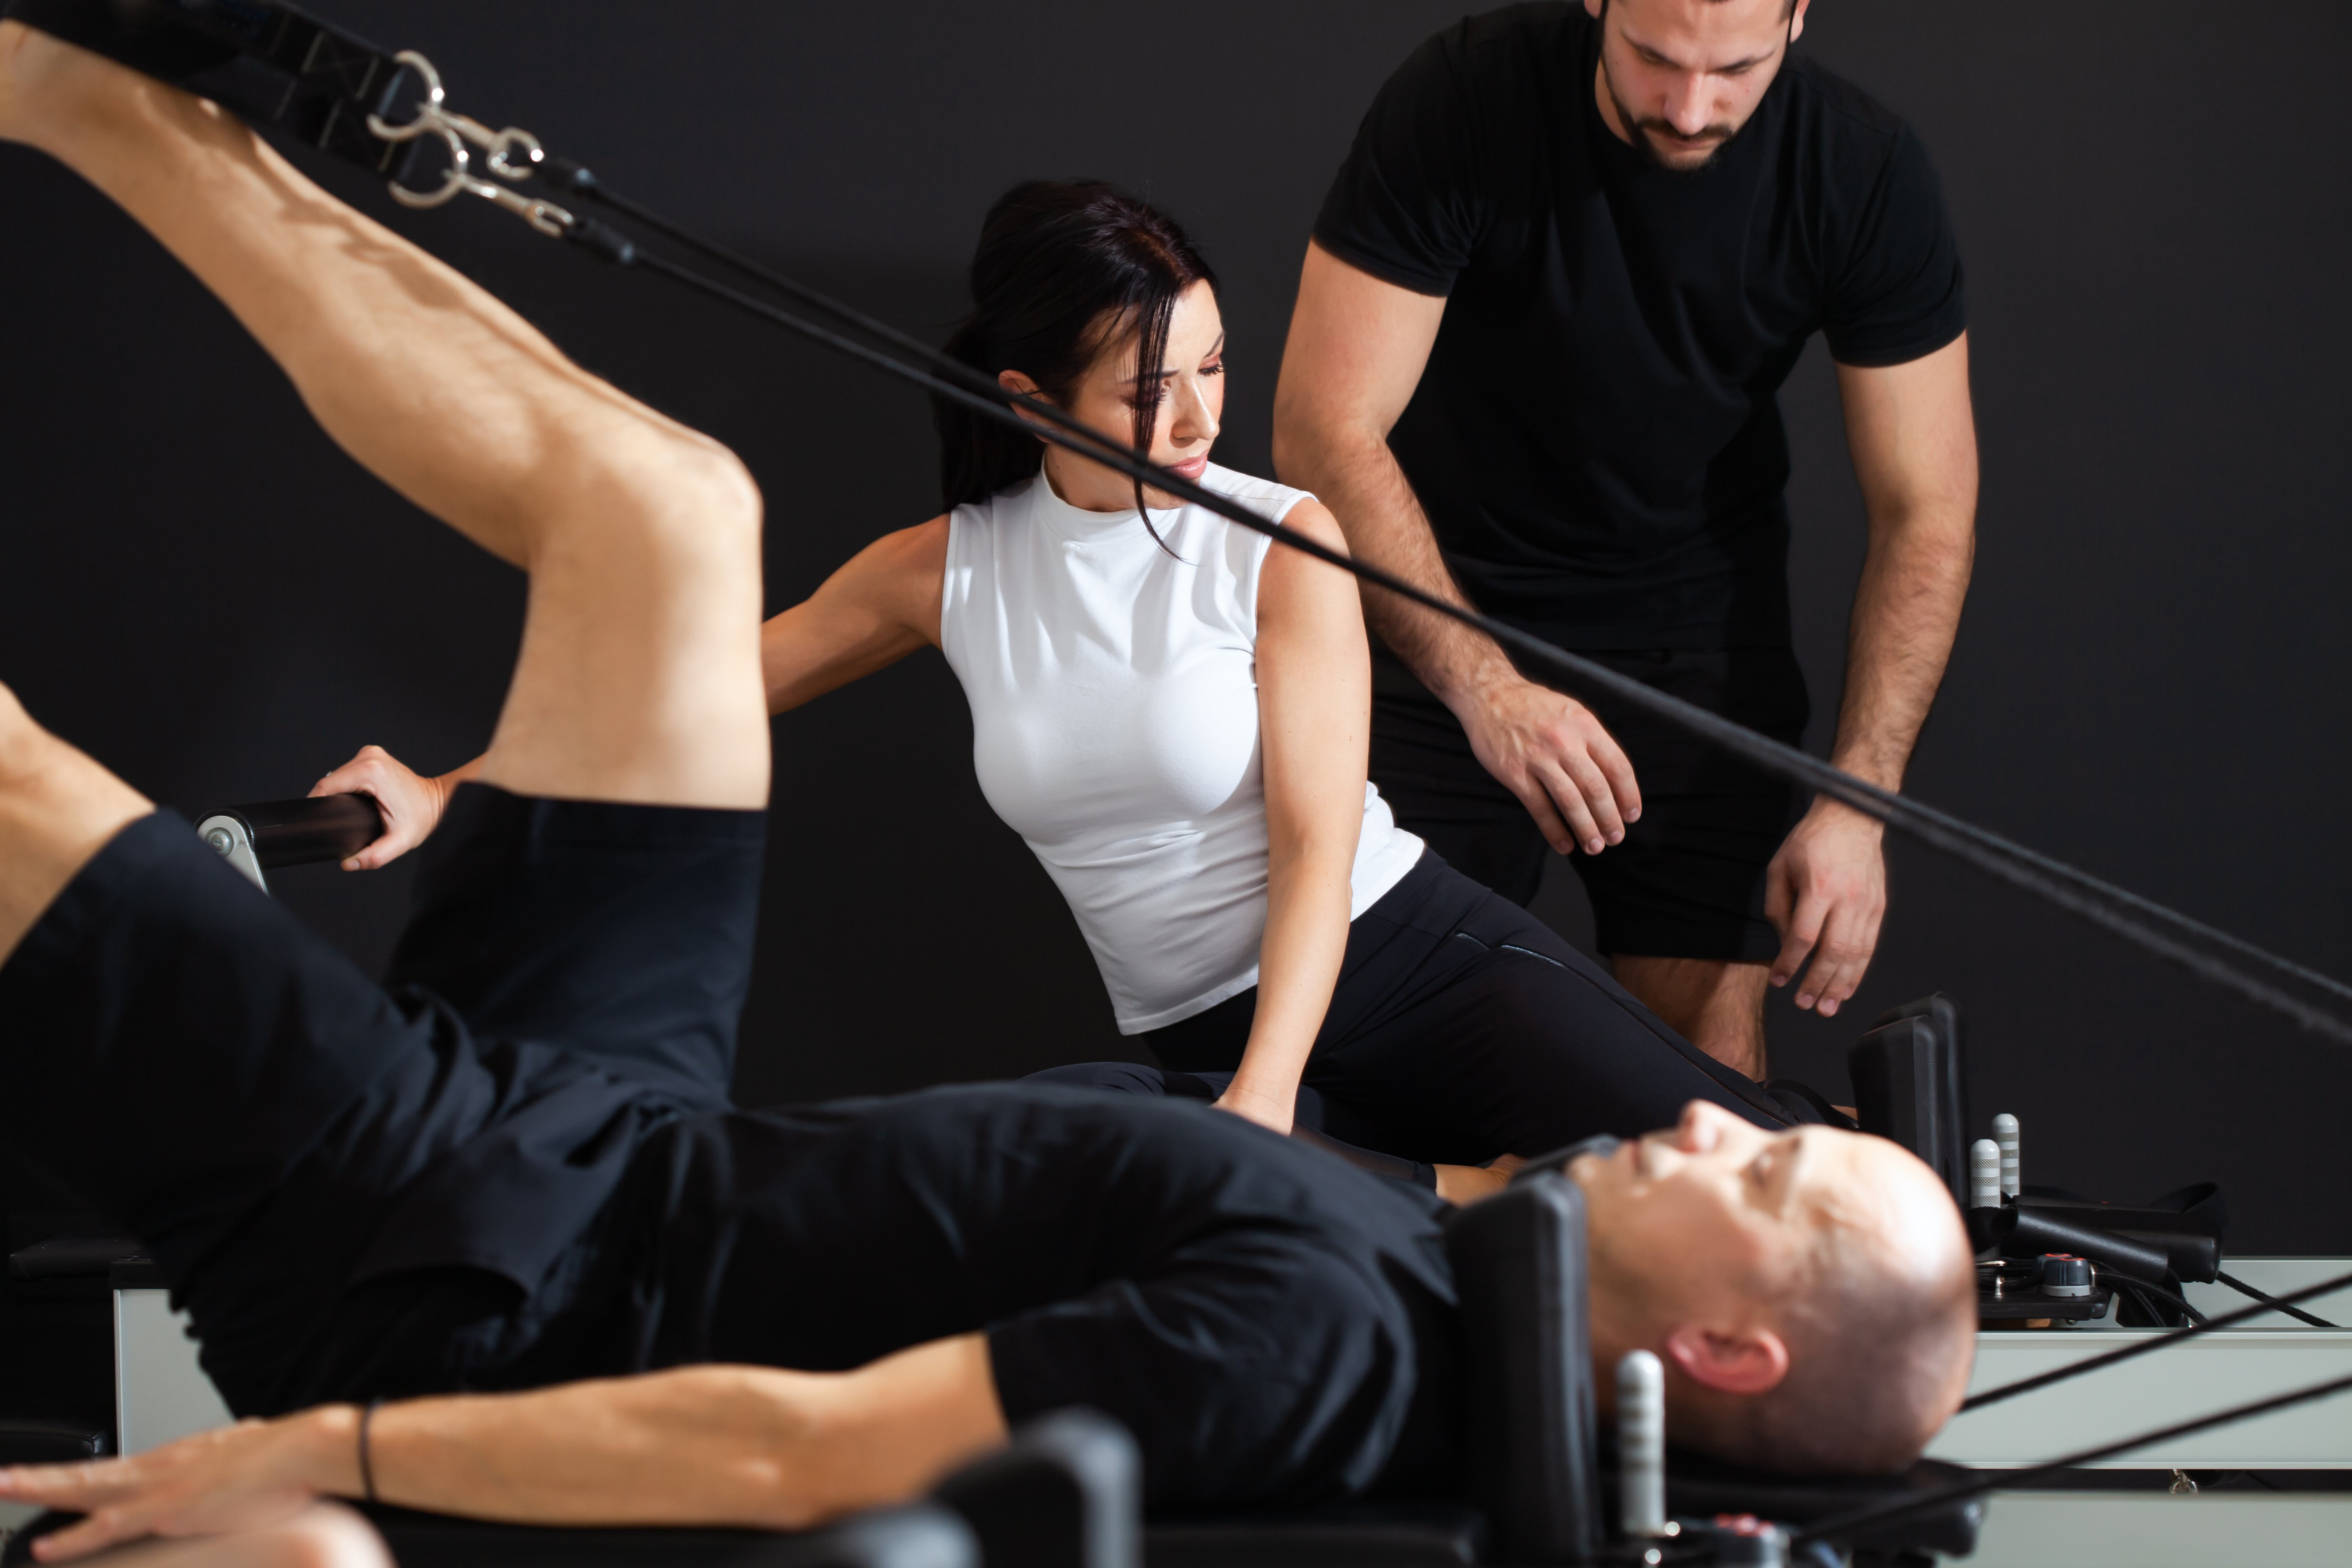 It's Not All About Abs: Pilates Is an A+ Head-to-Toe Workout